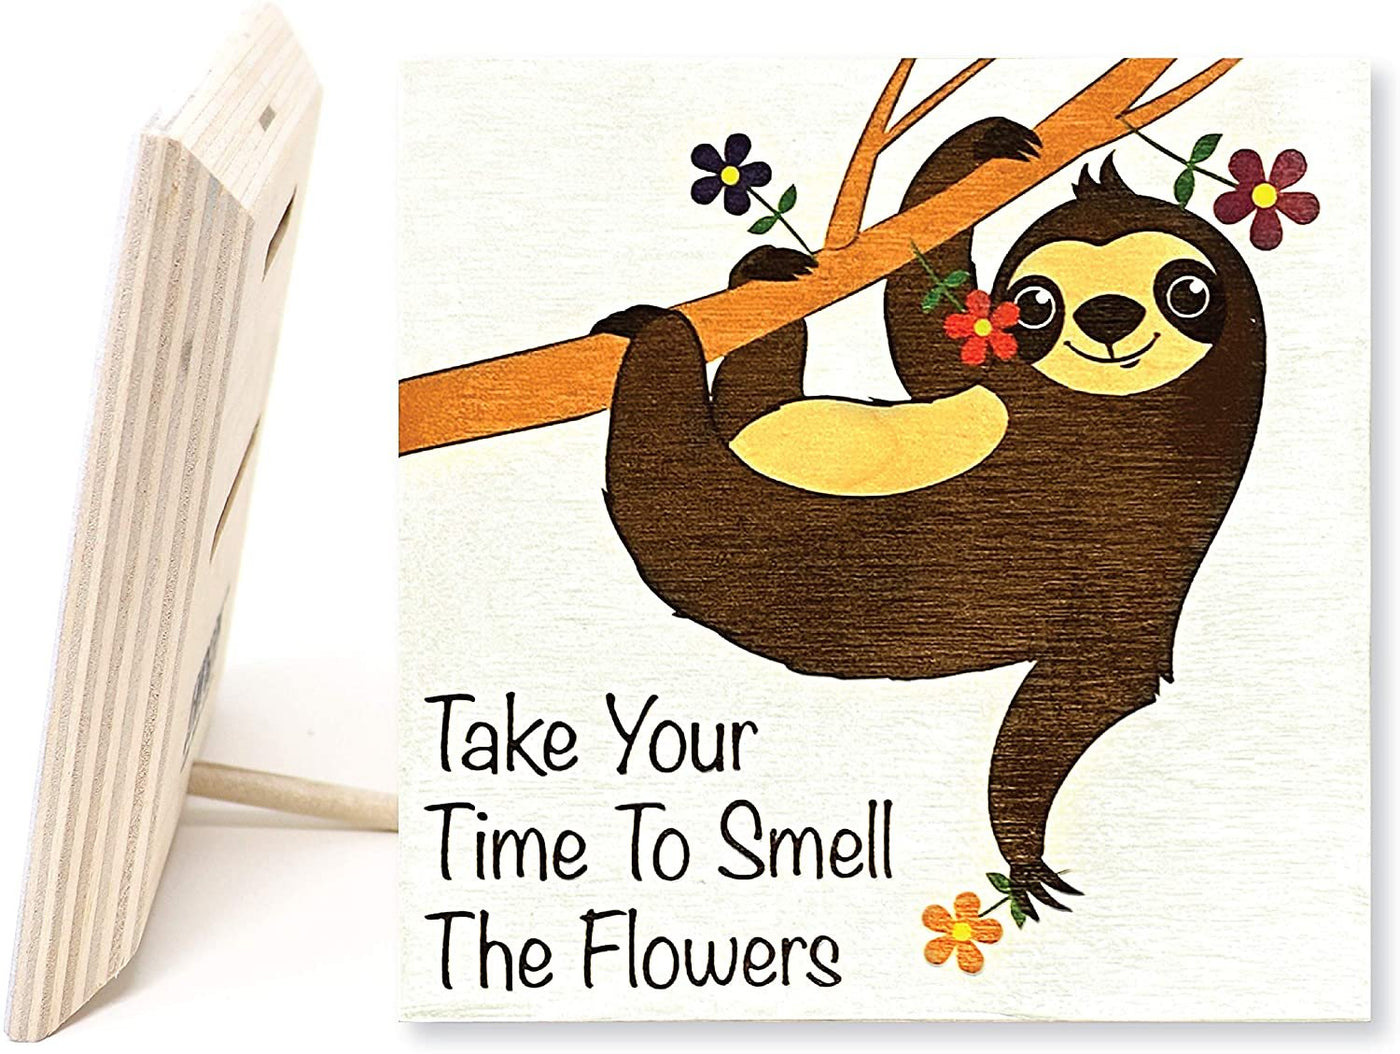 JennyGems Sloth Sign Decor | Take Time to Smell The Flowers | Real Wood Sign | Made in USA